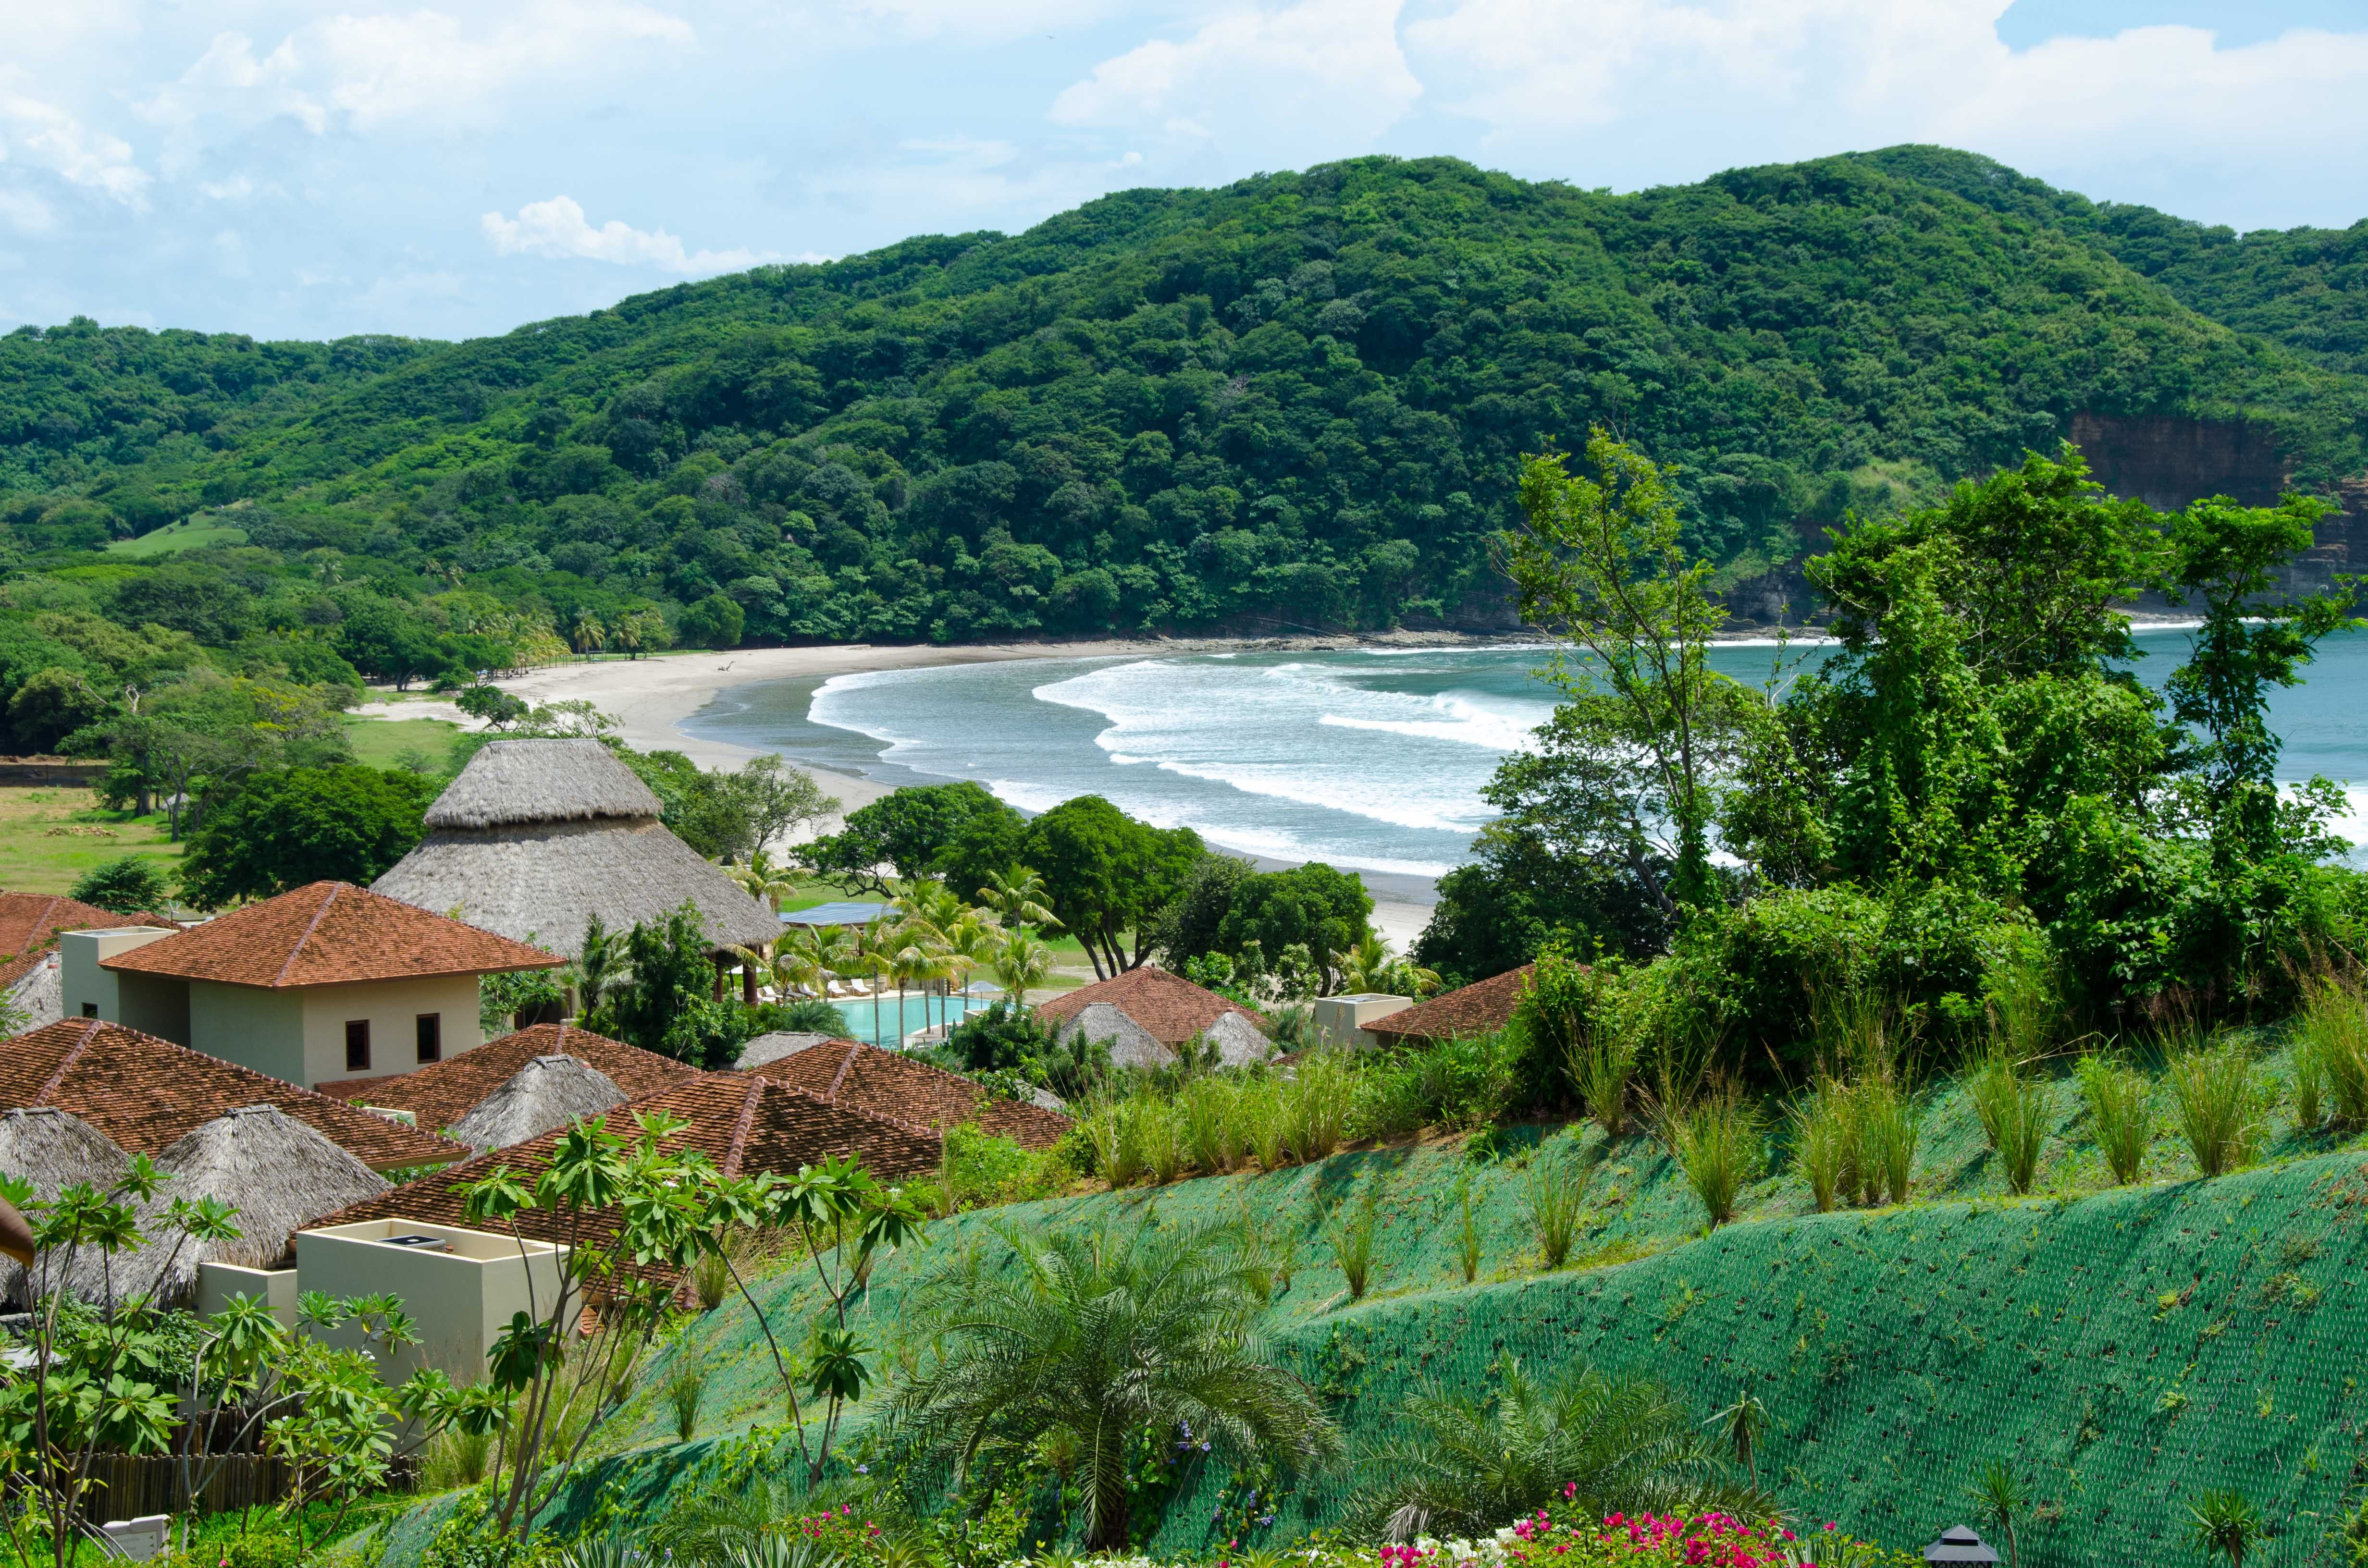 Nicaragua's Pacific Coast as viewed from the spectacular Mukul Resort, one of the finest hotels in Central America